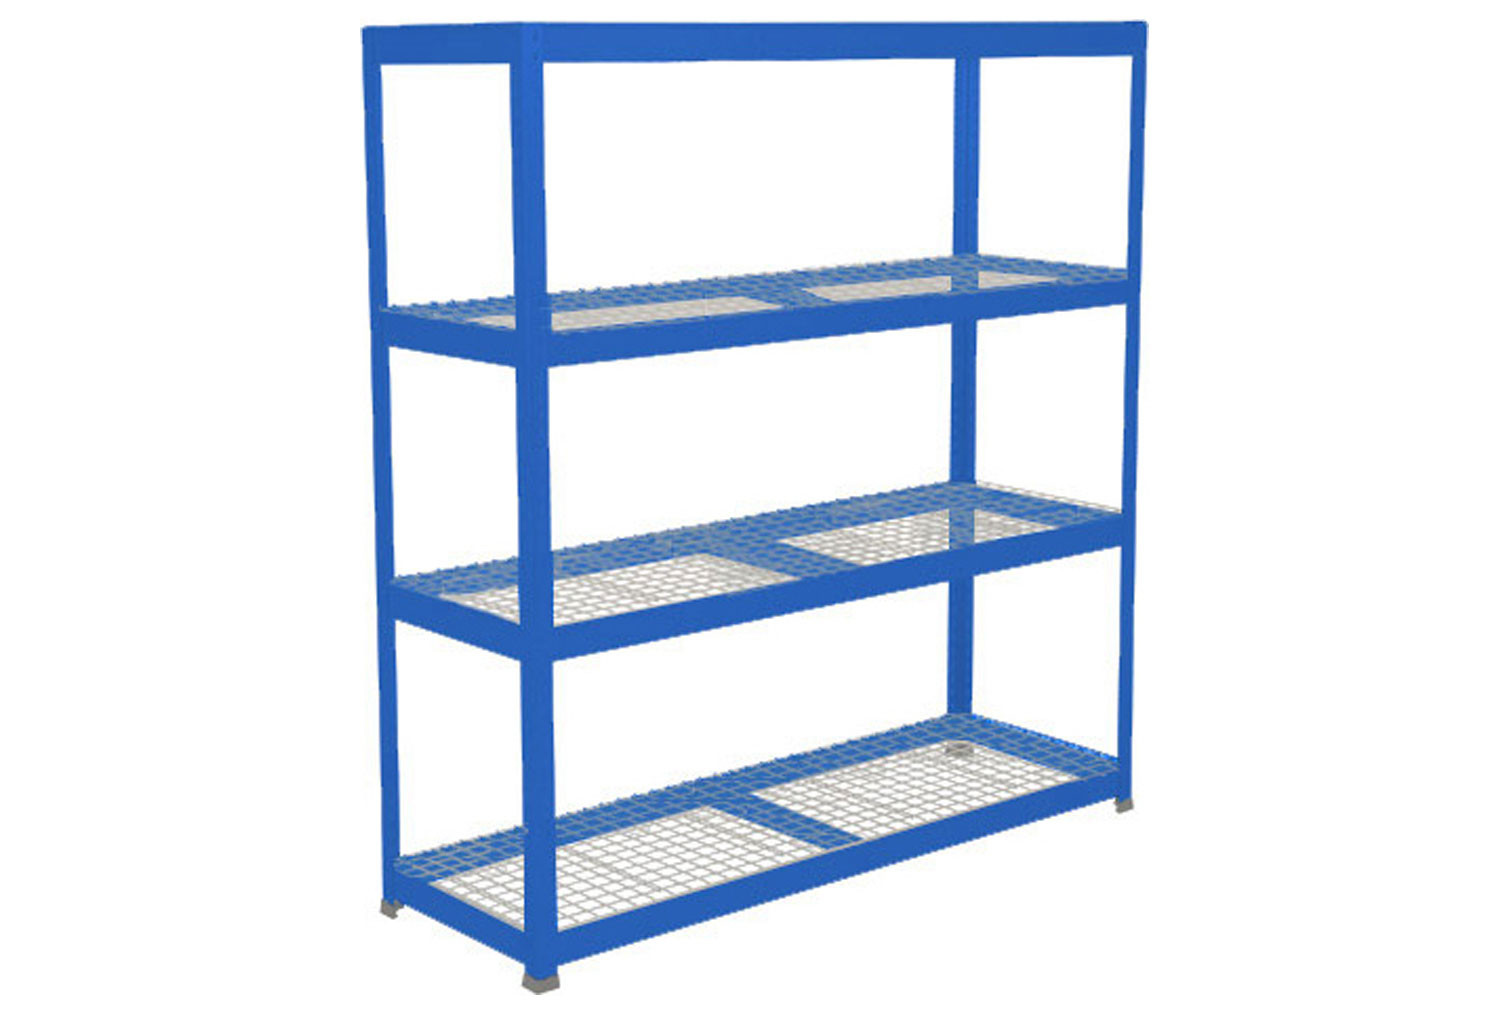 Rapid 1 Heavy Duty Shelving With 4 Wire Mesh Shelves 1830wx1980h (Blue)